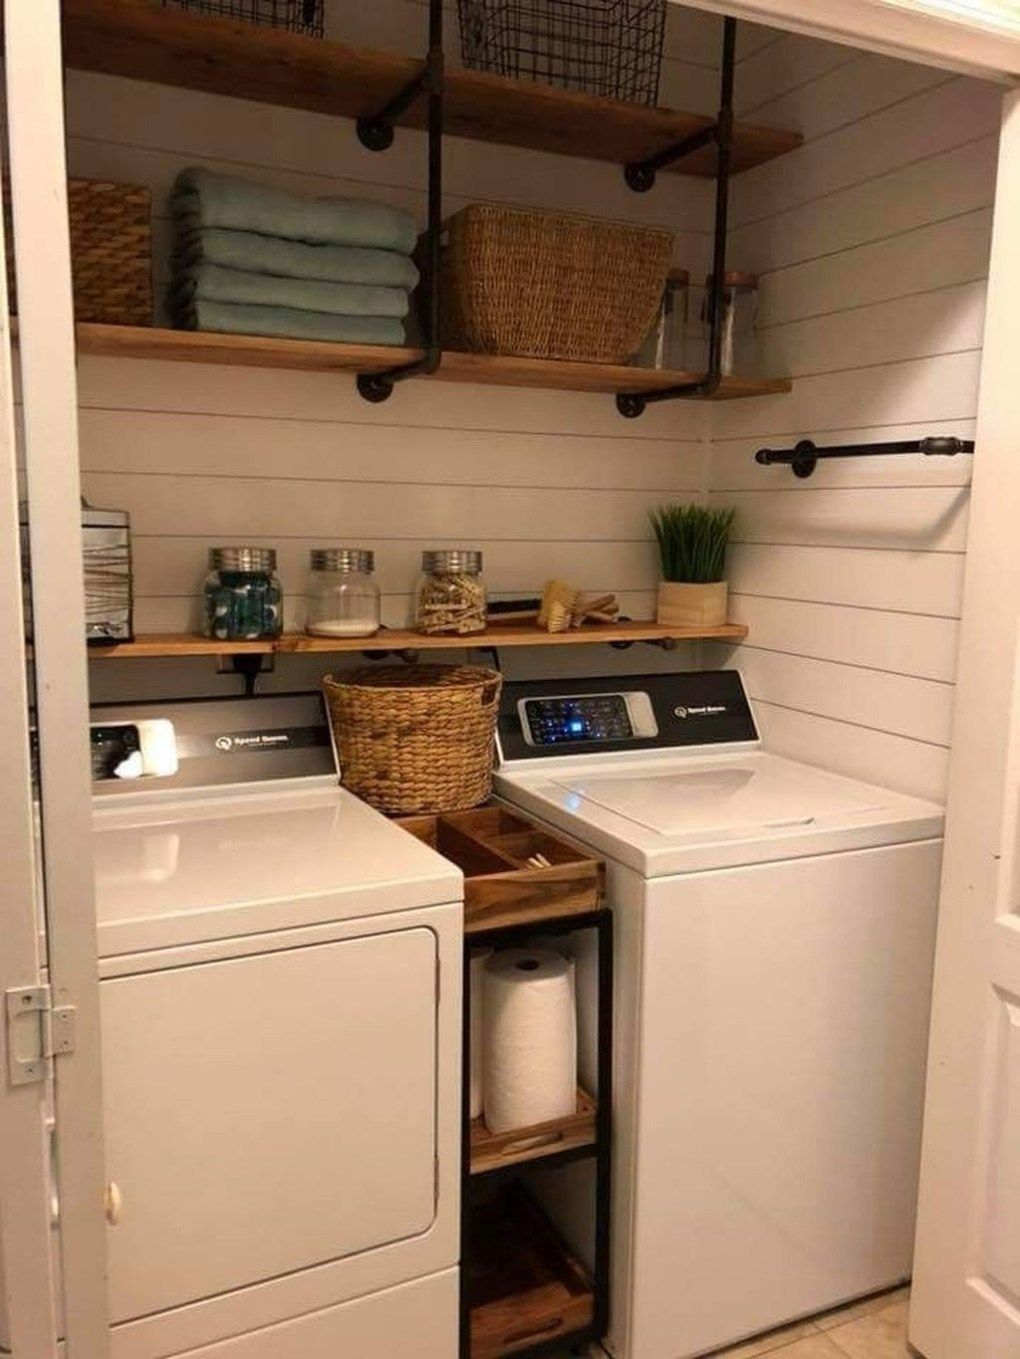 47 Efficient Small Laundry Room Design Ideas images